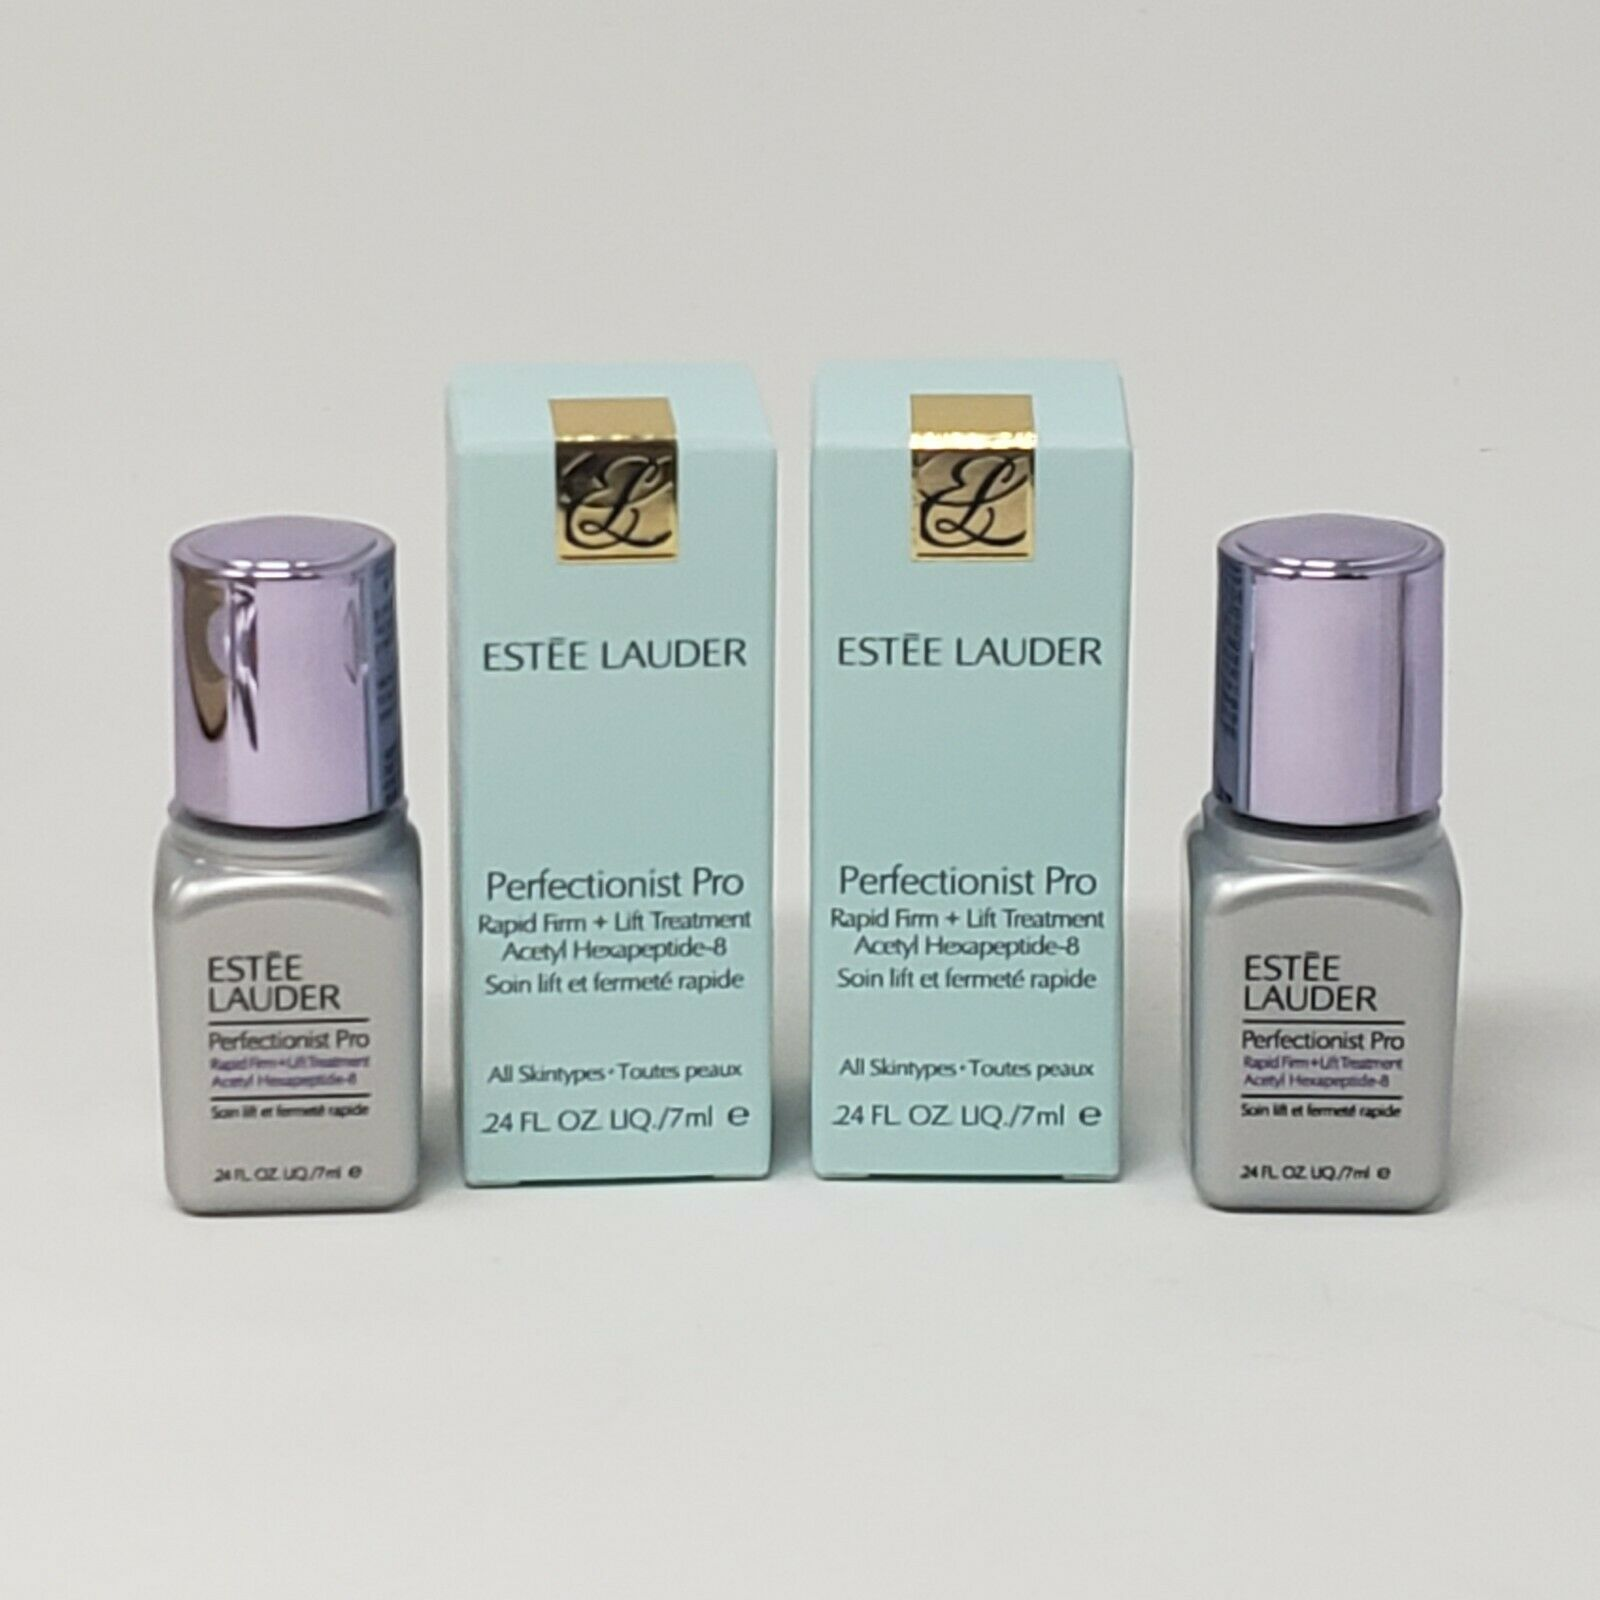 2 New Estee Lauder Perfectionist Pro Rapid Firm + Lift Treatment .24 oz Each - $17.75